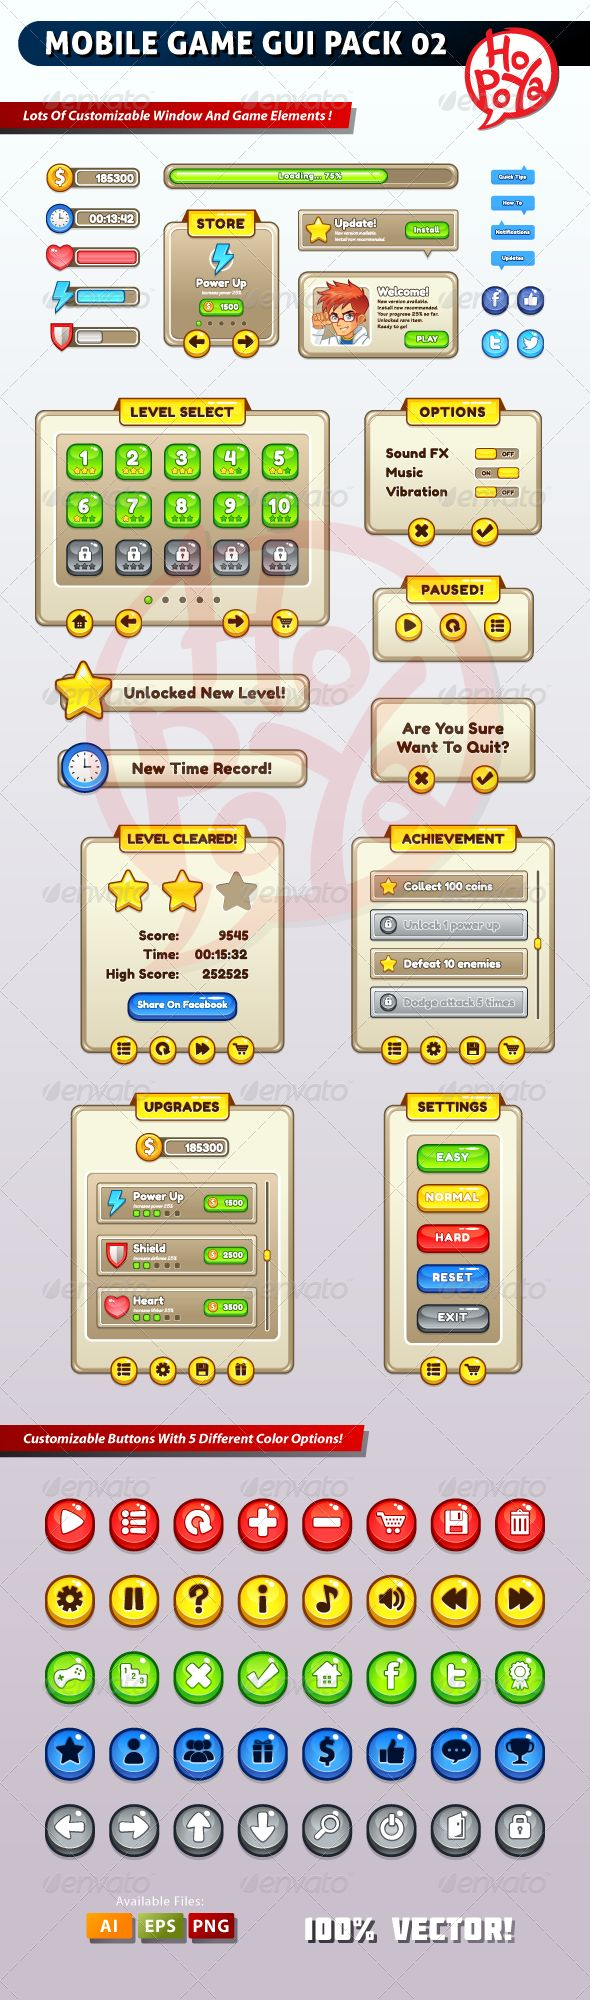 Mobile Game GUI Pack 02 - User Interfaces Game Assets